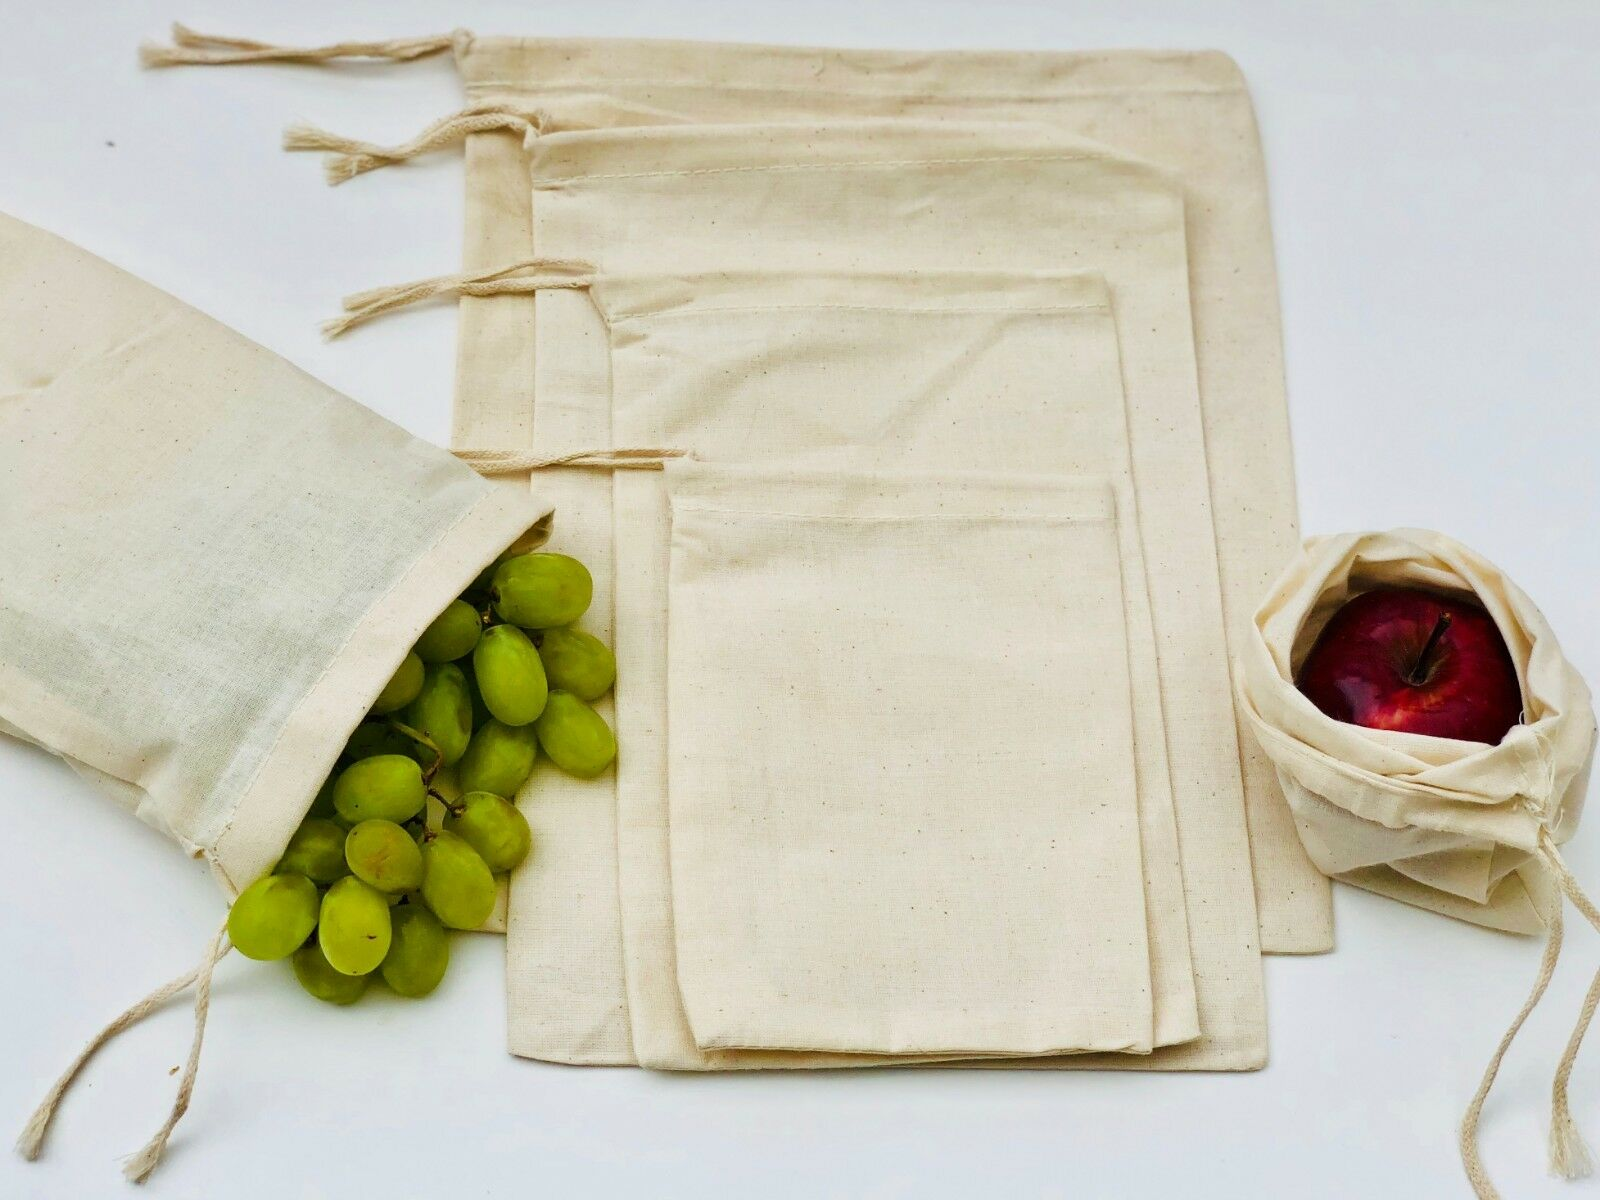 8x10 Inches Muslin Bags with Single Drawstring. 100% 100% 100% Organic Cotton - Select Qty 2015bf